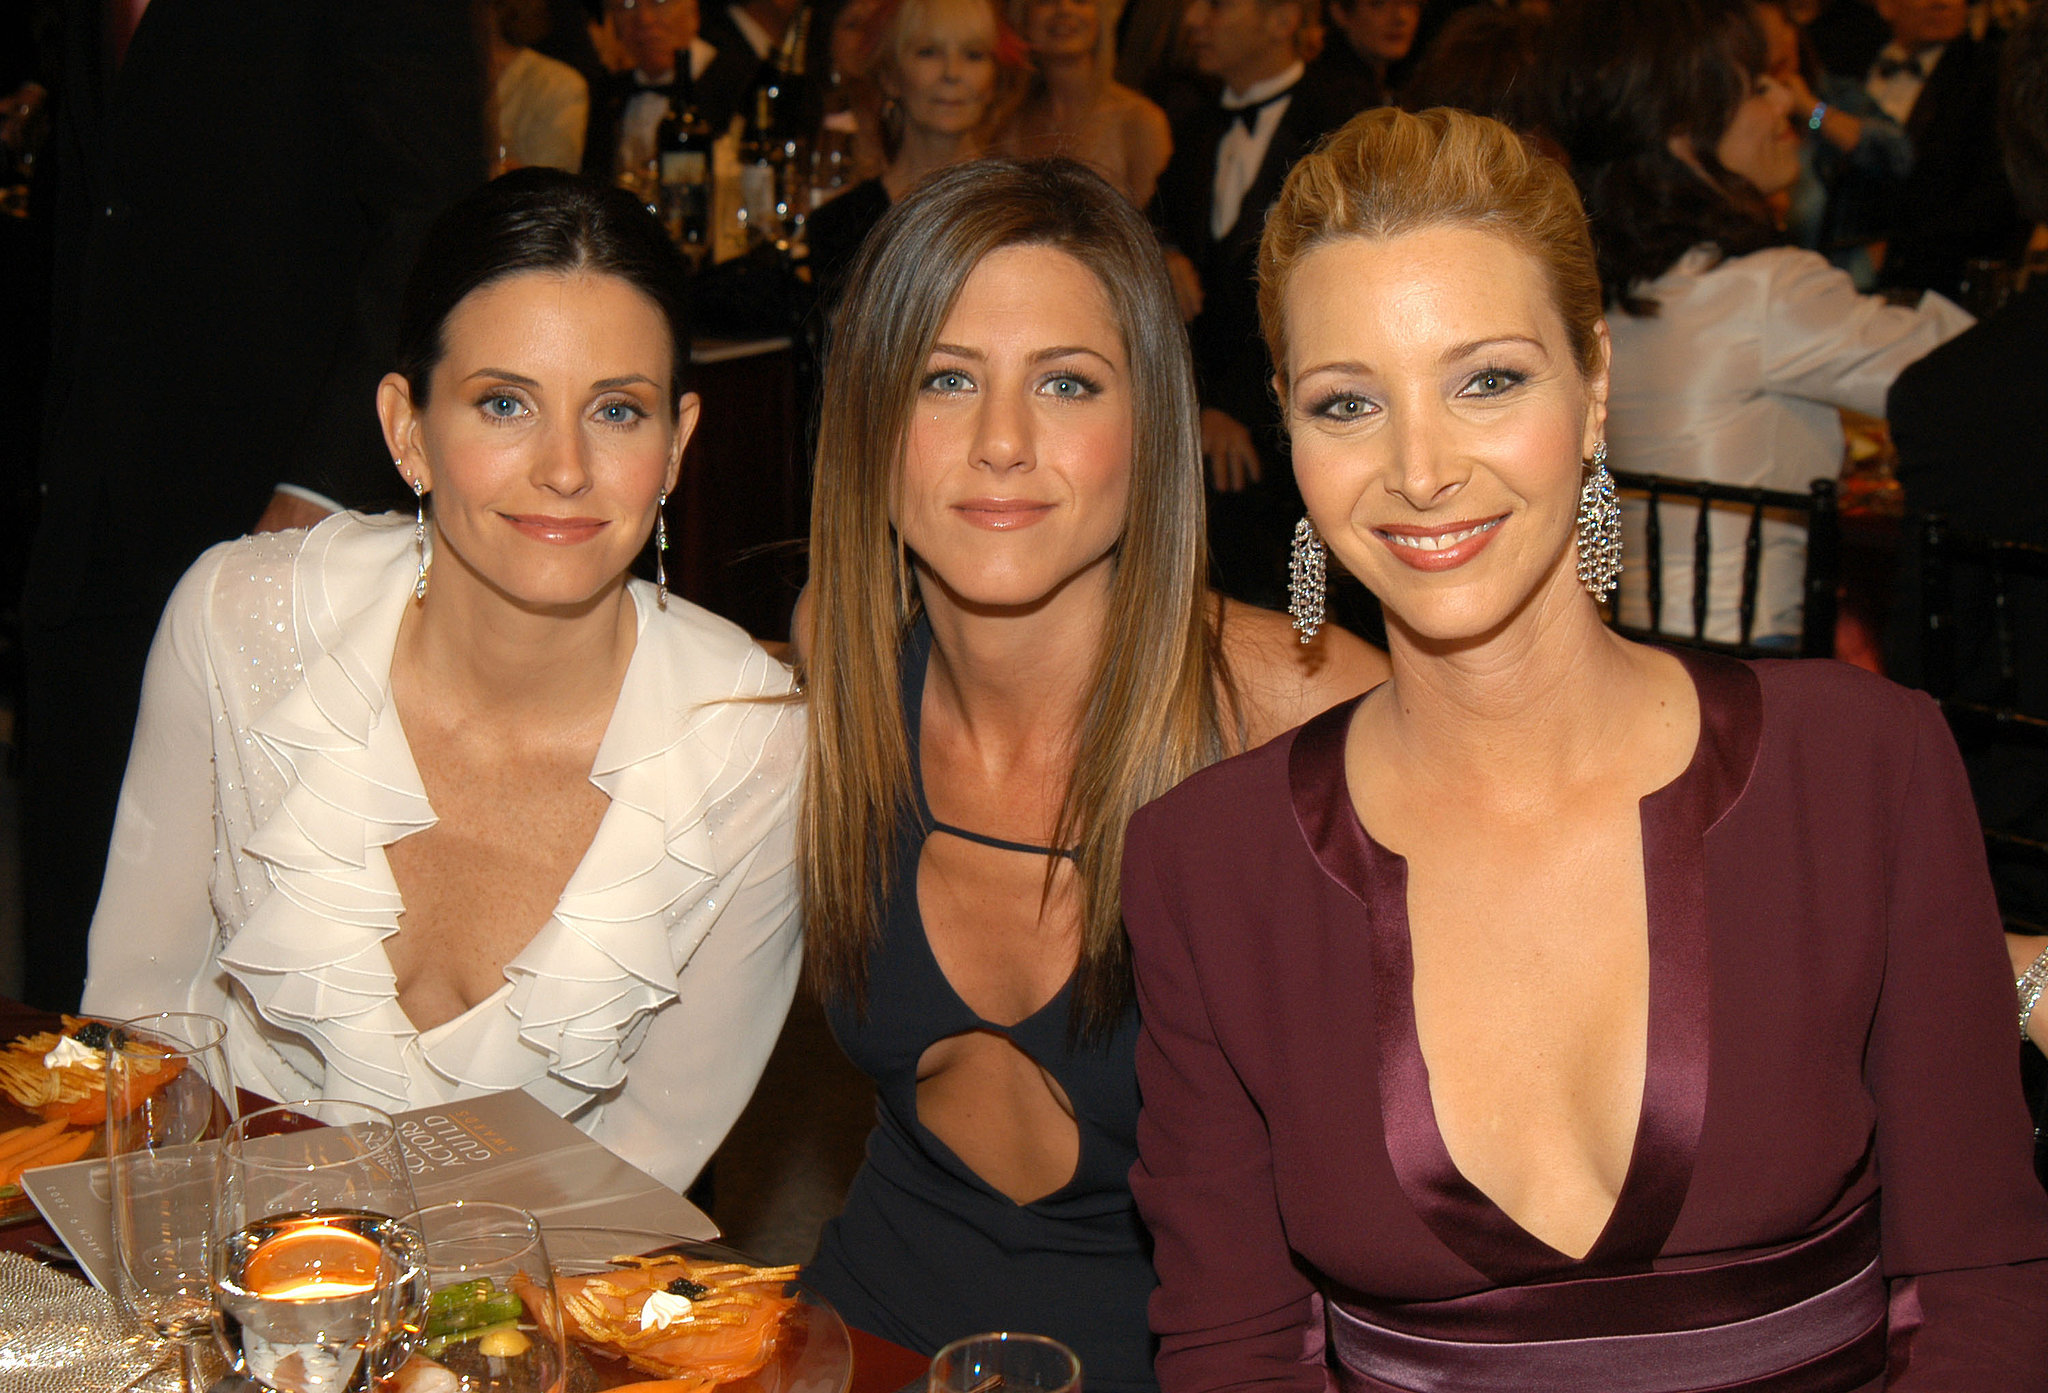 Courteney Cox, Jennifer Aniston, and Lisa Kudrow came out to support their series Friends in 2003.